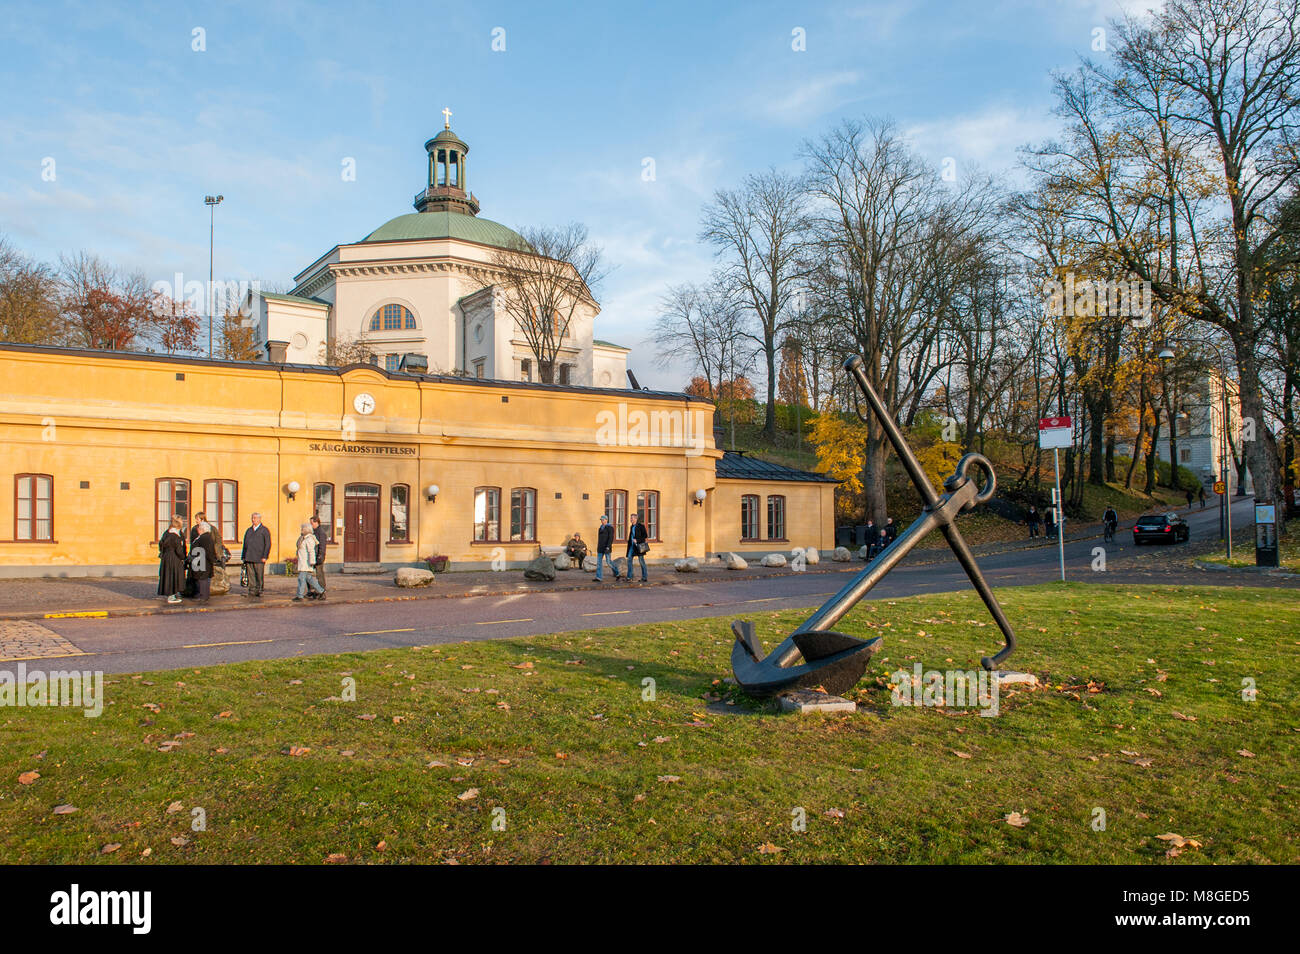 People enjoy a Sunday walk during autumn at historic Skeppsholmen island in Stockholm. The capital city of Sweden - Stock Image